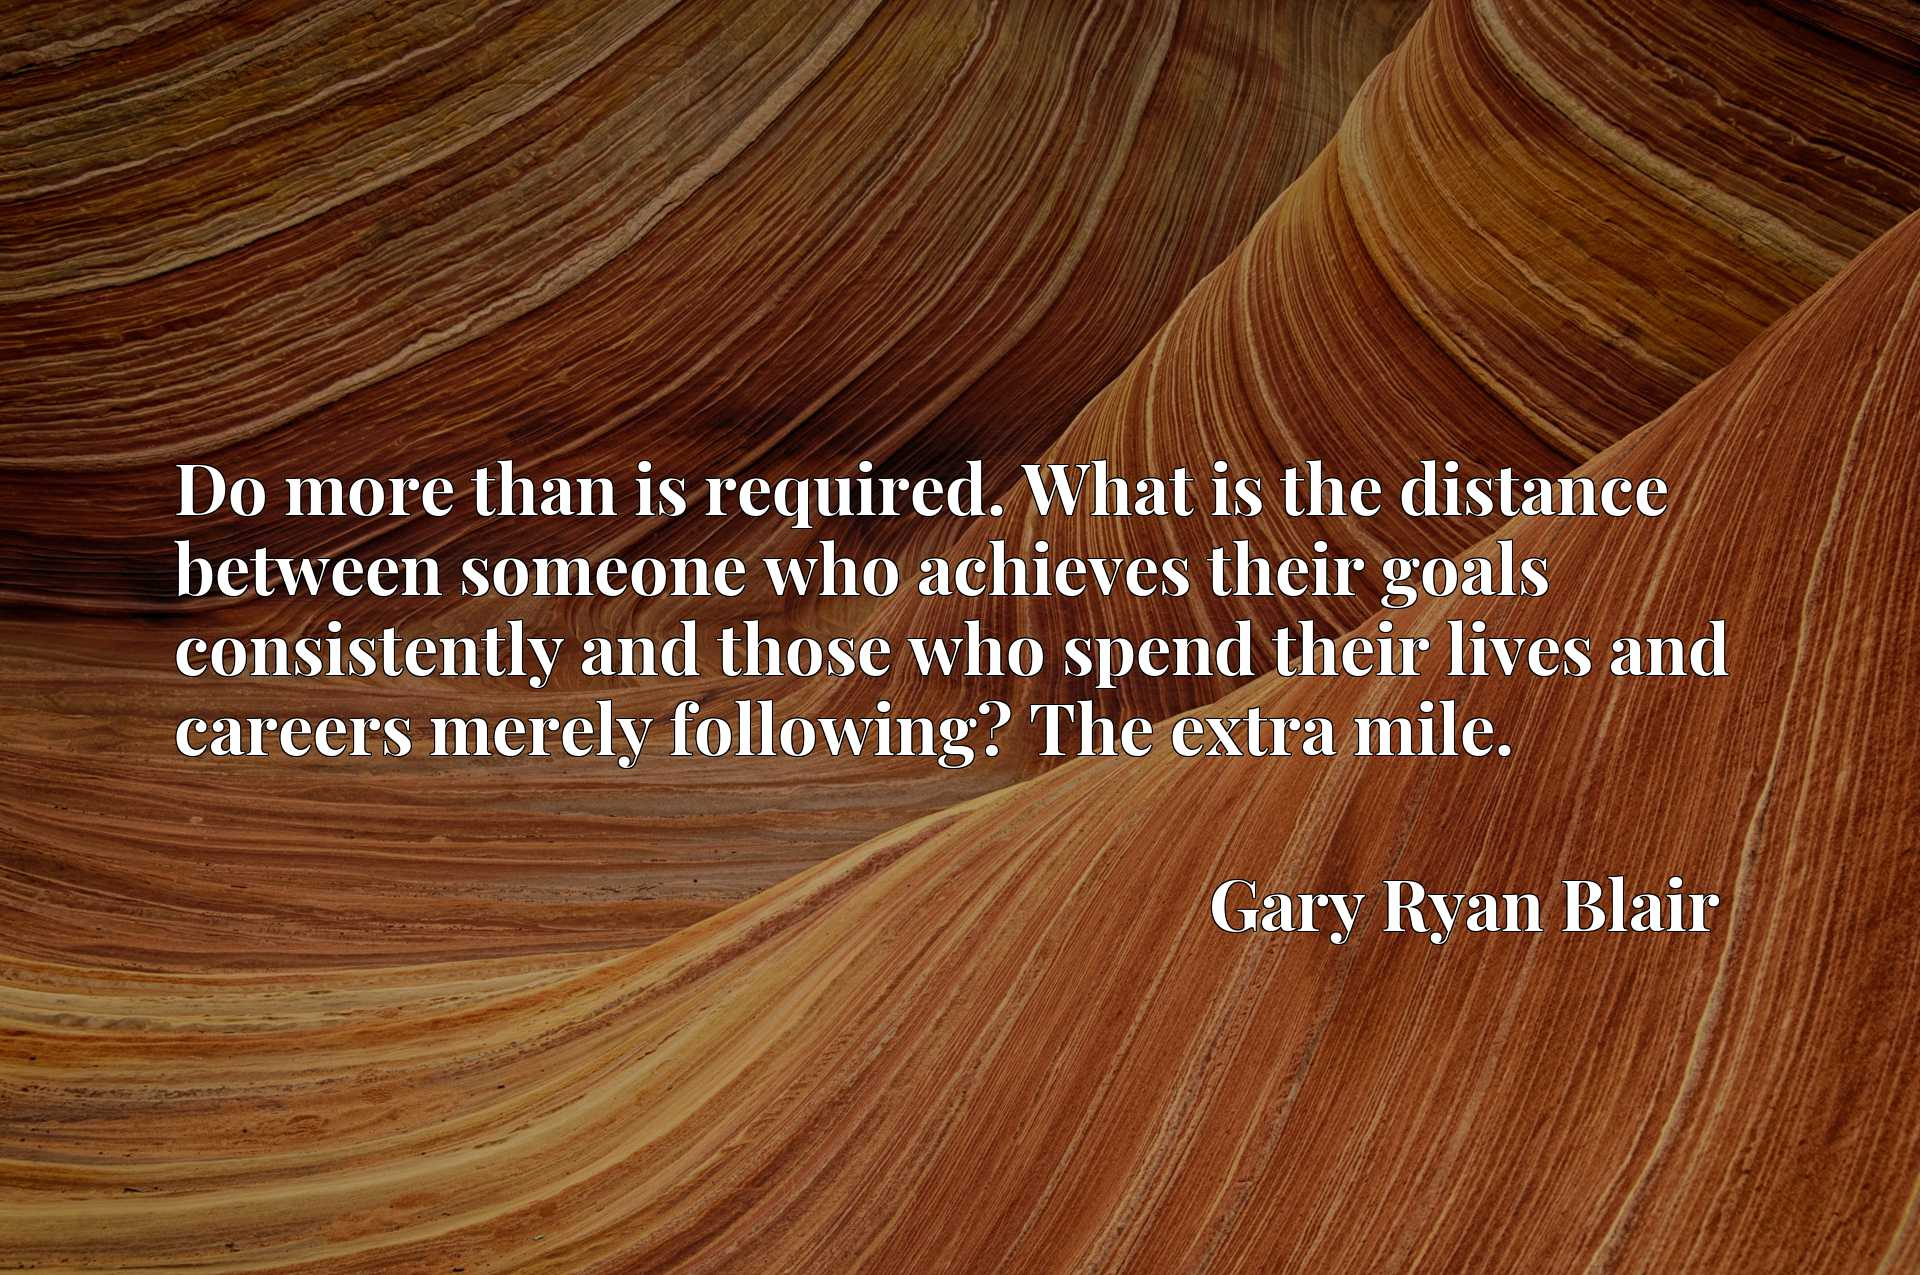 Do more than is required. What is the distance between someone who achieves their goals consistently and those who spend their lives and careers merely following? The extra mile.